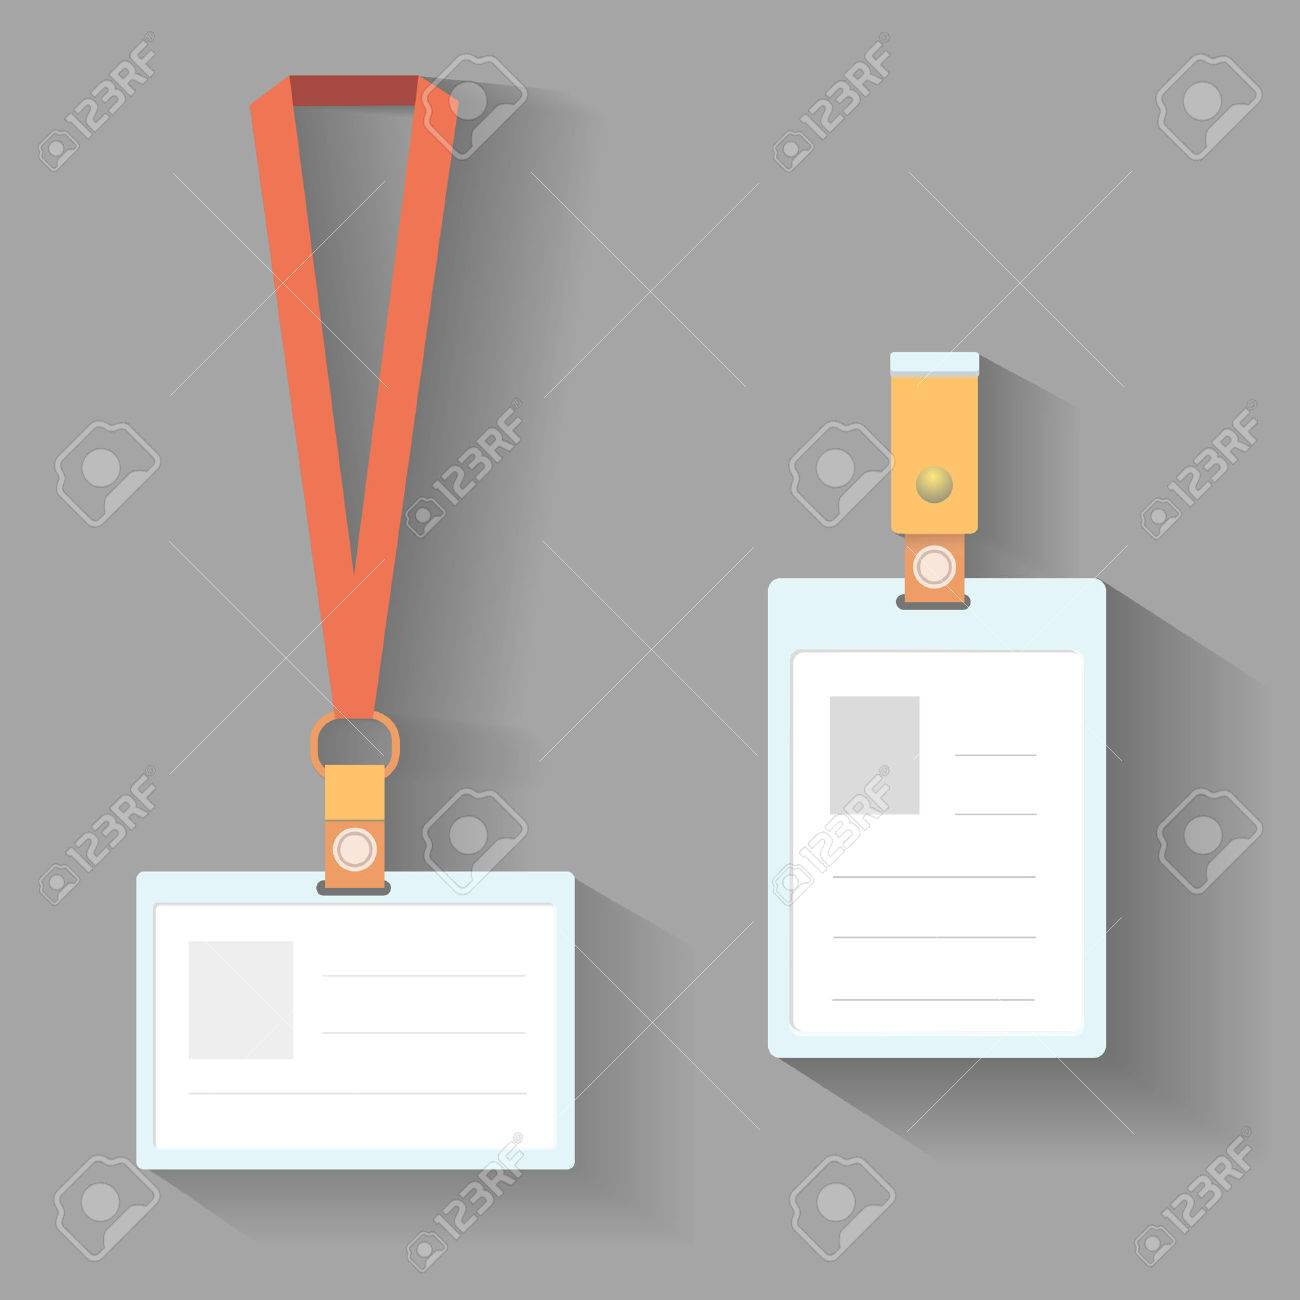 Lanyard Badges Template Flat Design With Shadow Royalty Free ...